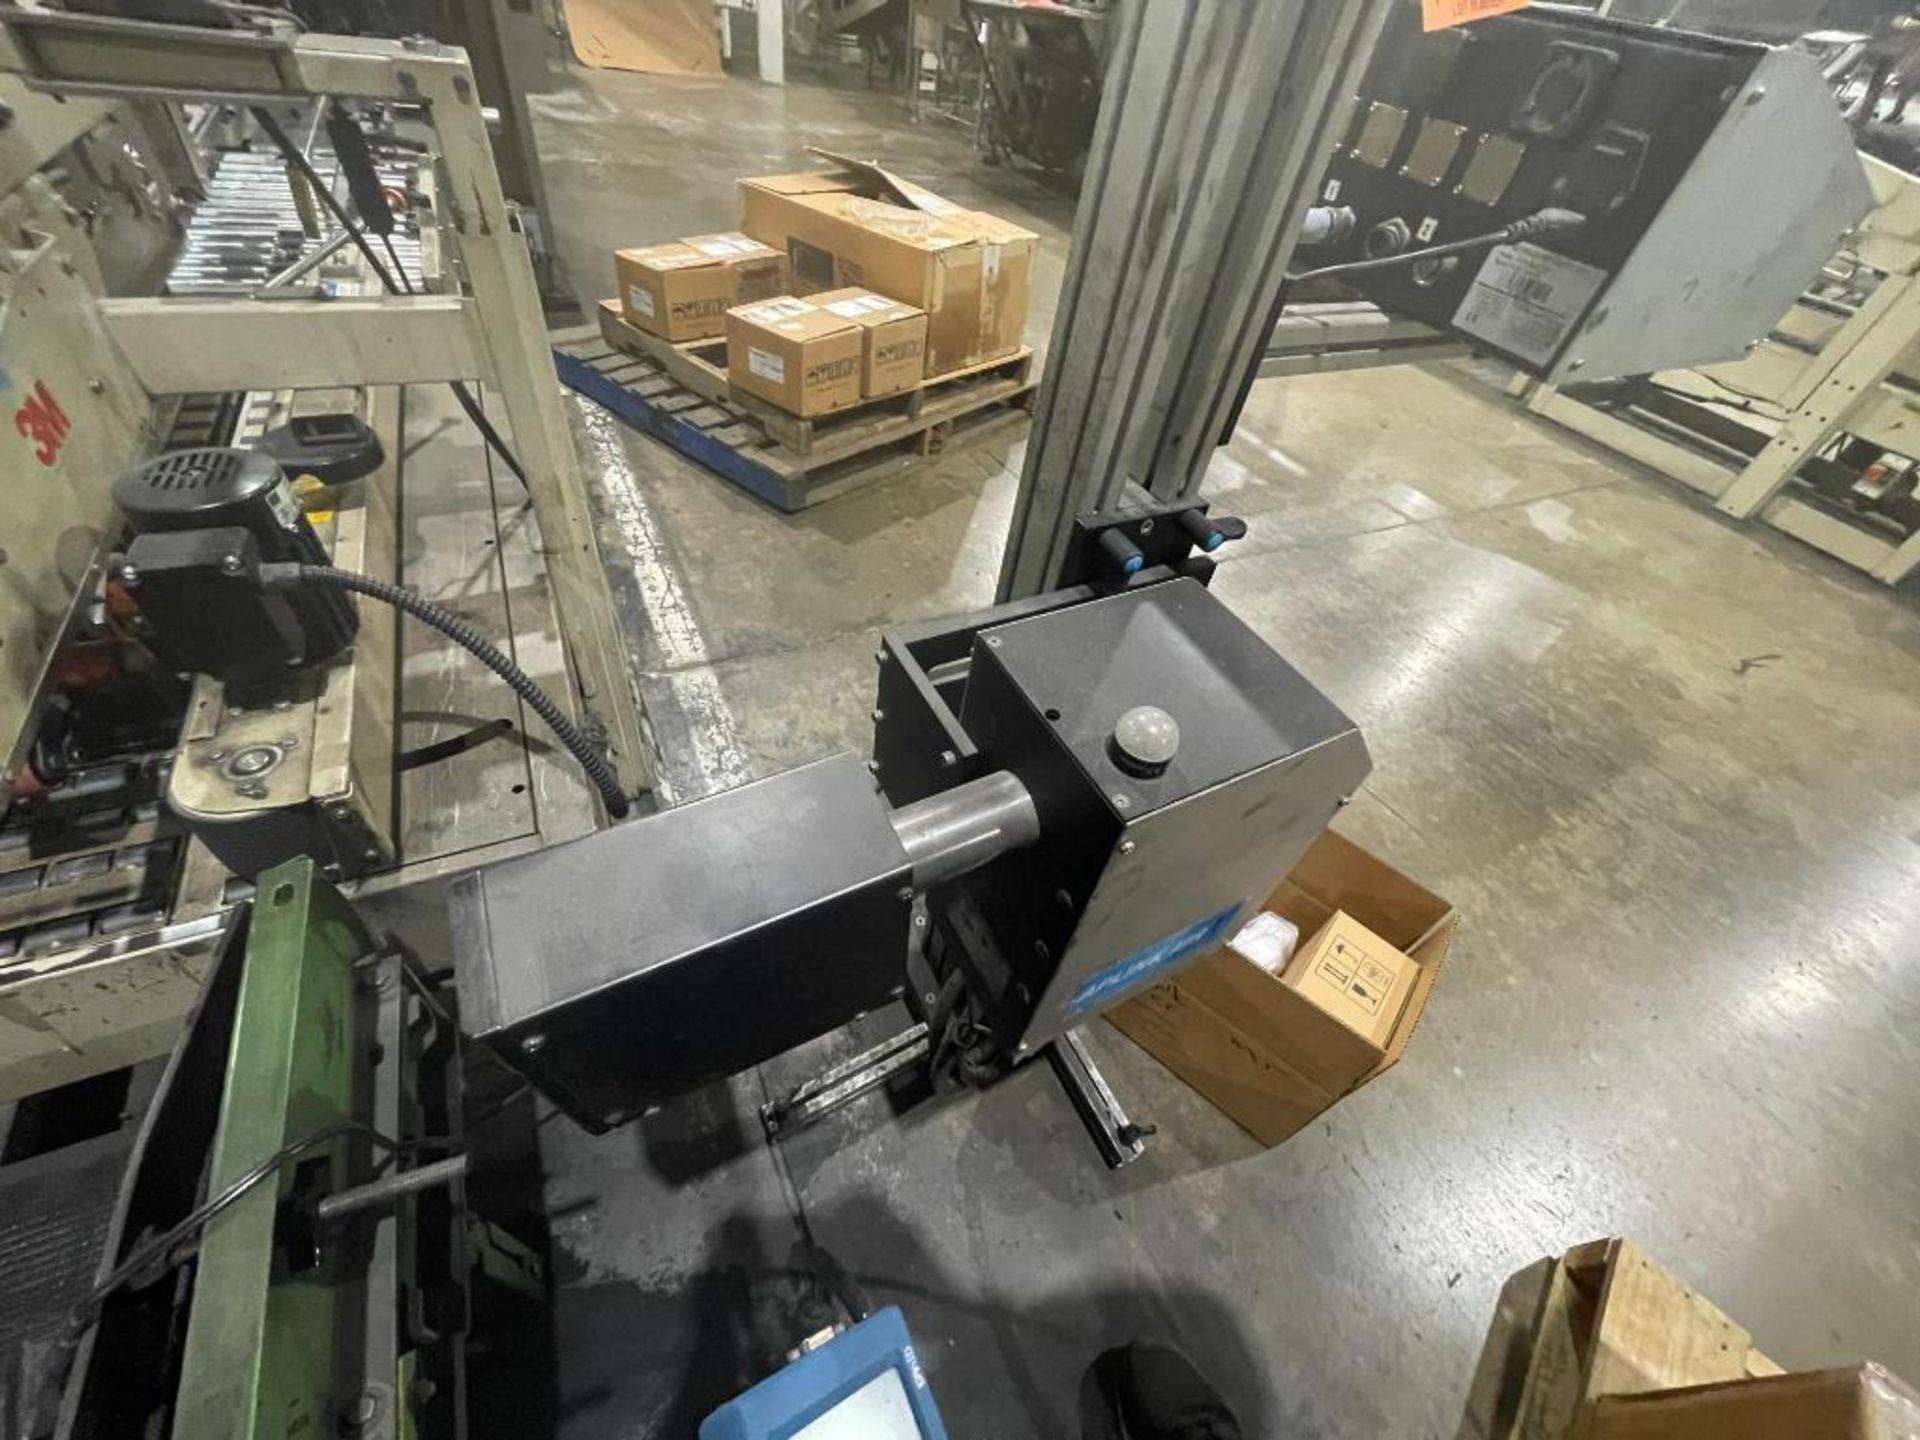 Automatic Printing Systems case coder - Image 8 of 14